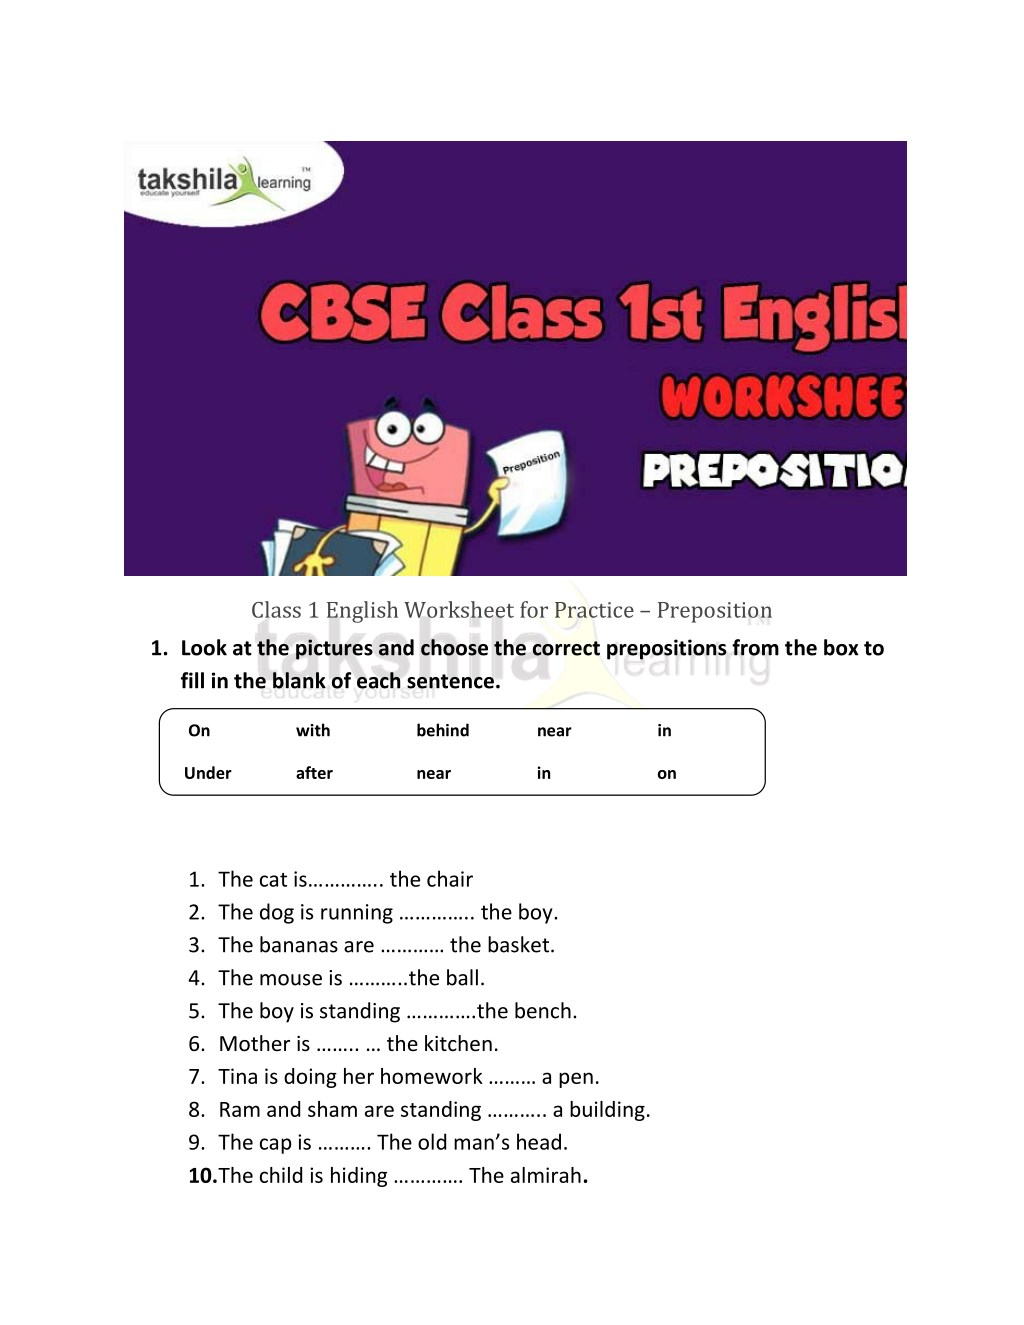 - PPT - Class 1 English Worksheet For Practice - Preposition